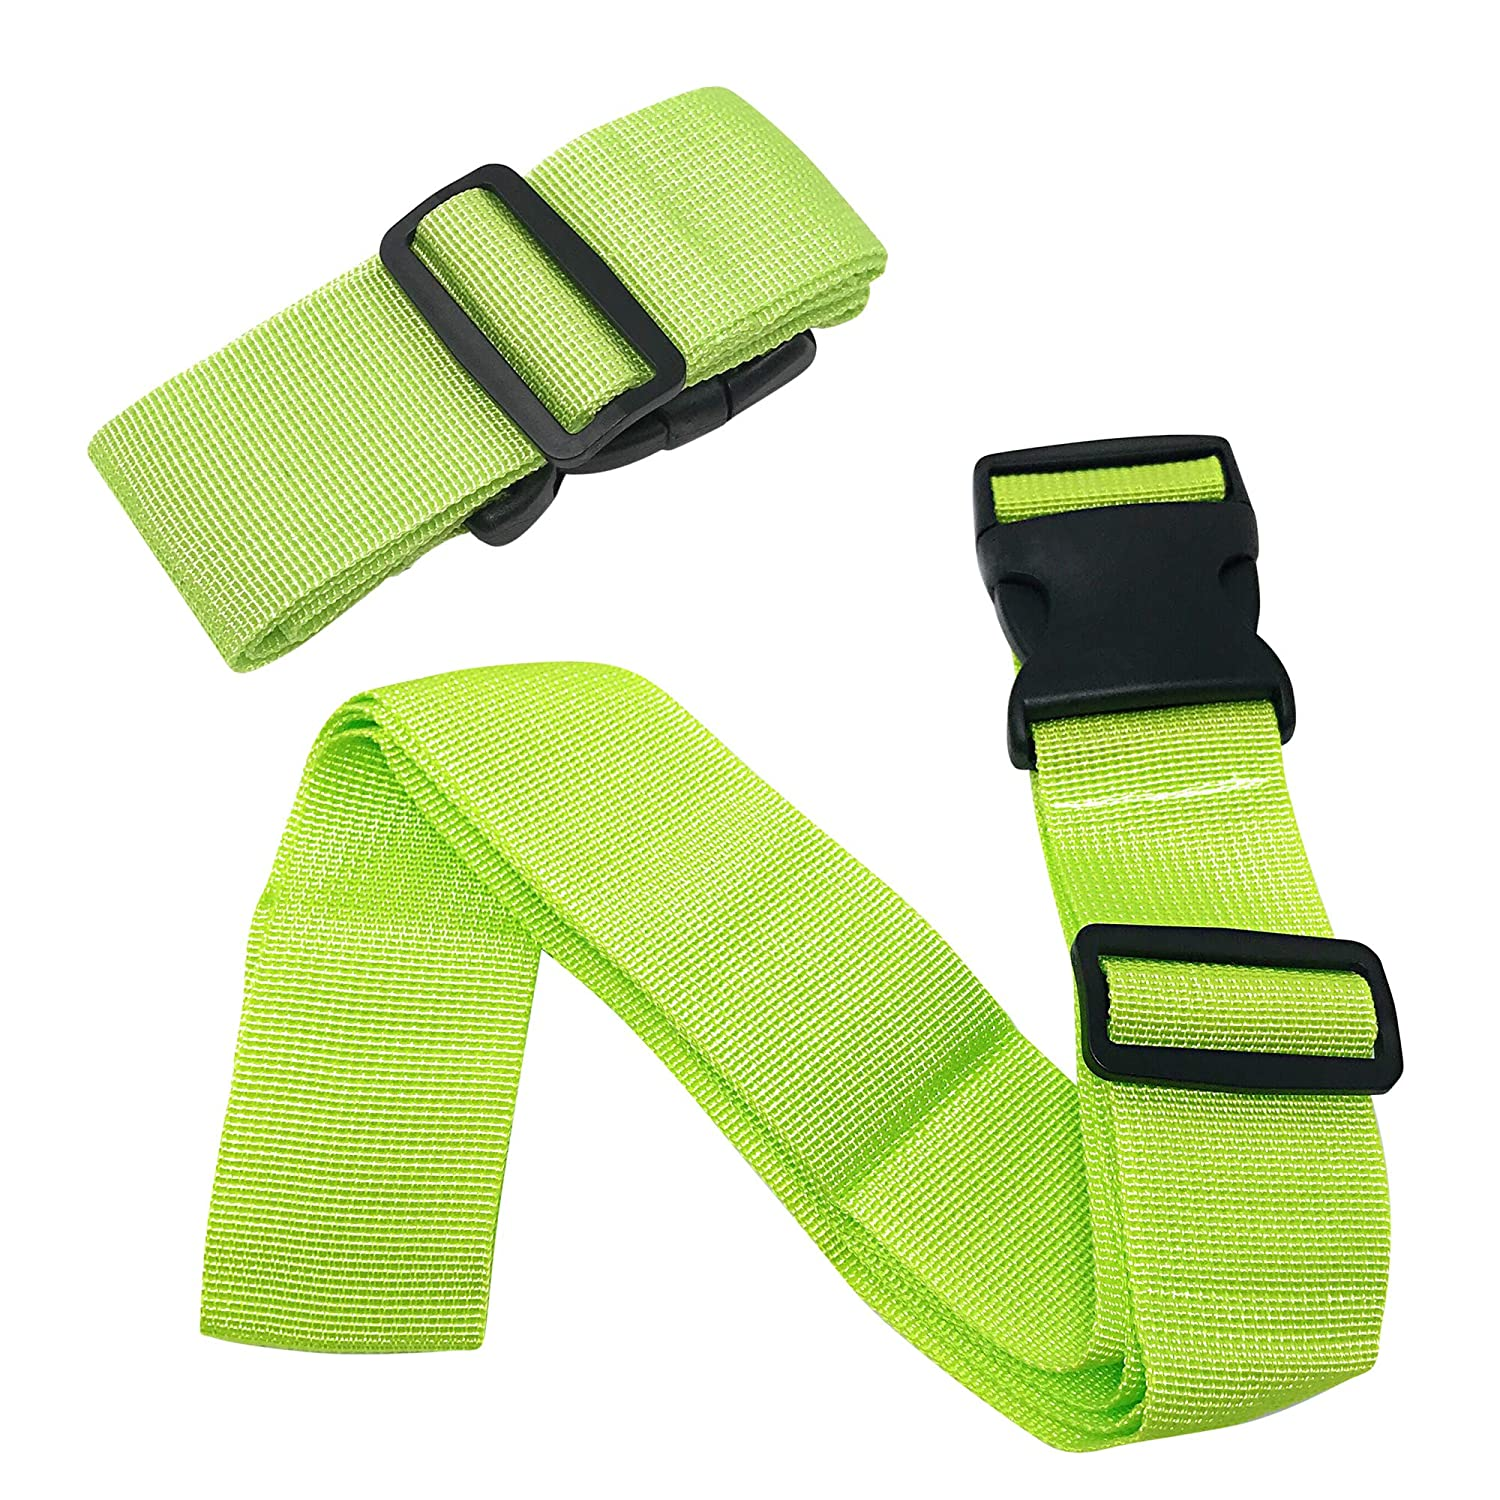 Rusoji Set of 2 Easy Adjustable Luggage Straps with Buckle Suitcase Handle Belts Travel Accessories Neon Green